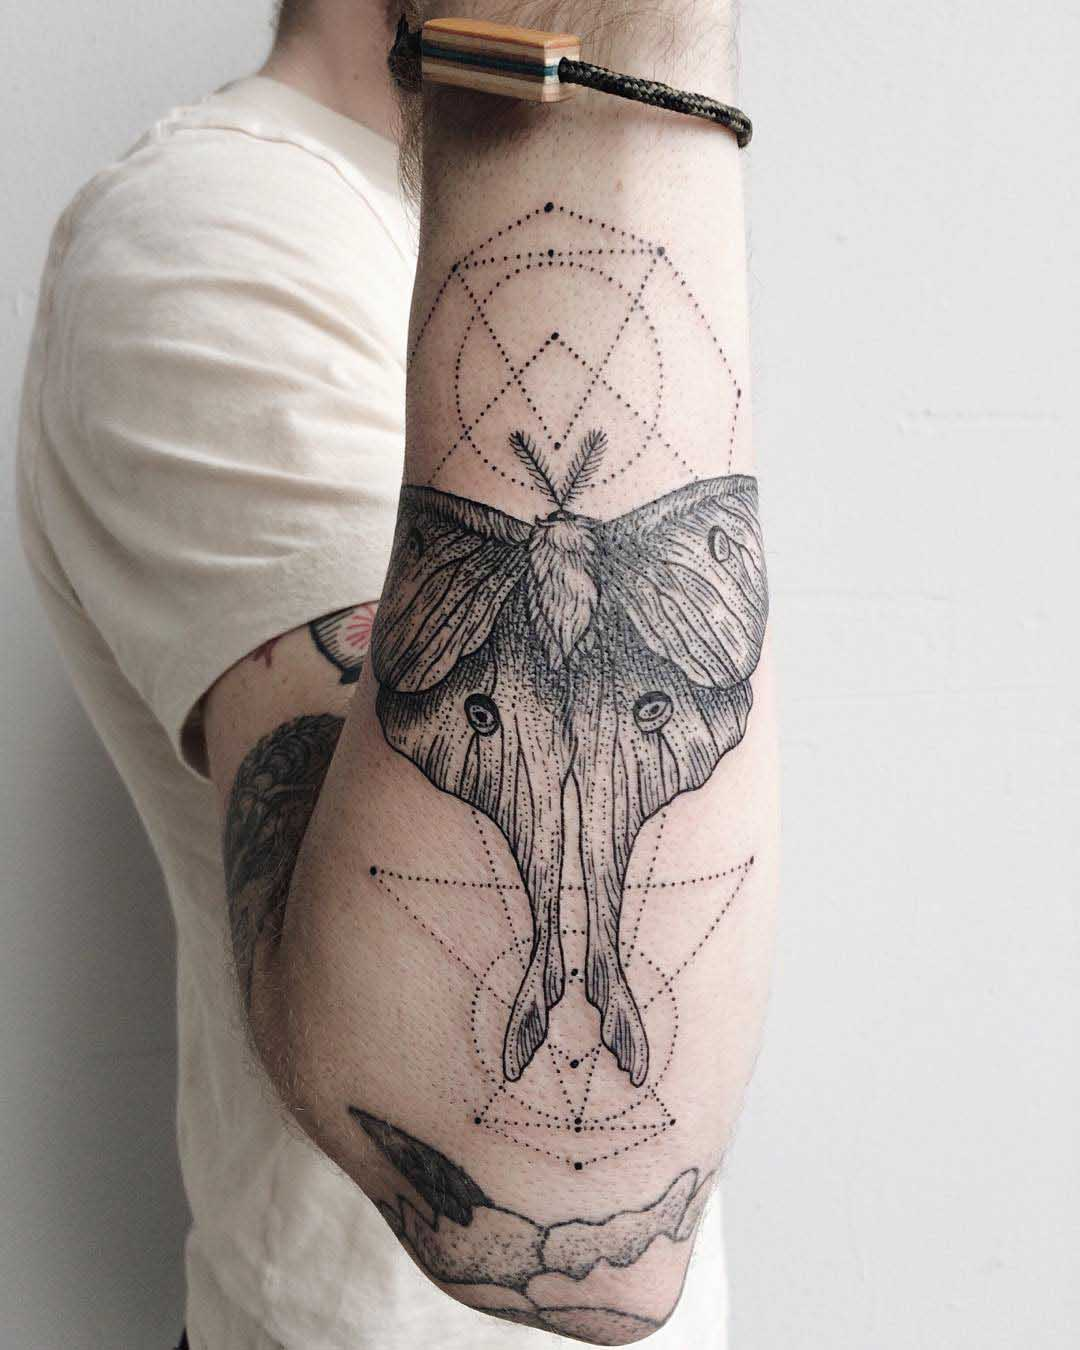 forearm tattoo of a moth and dots geometry